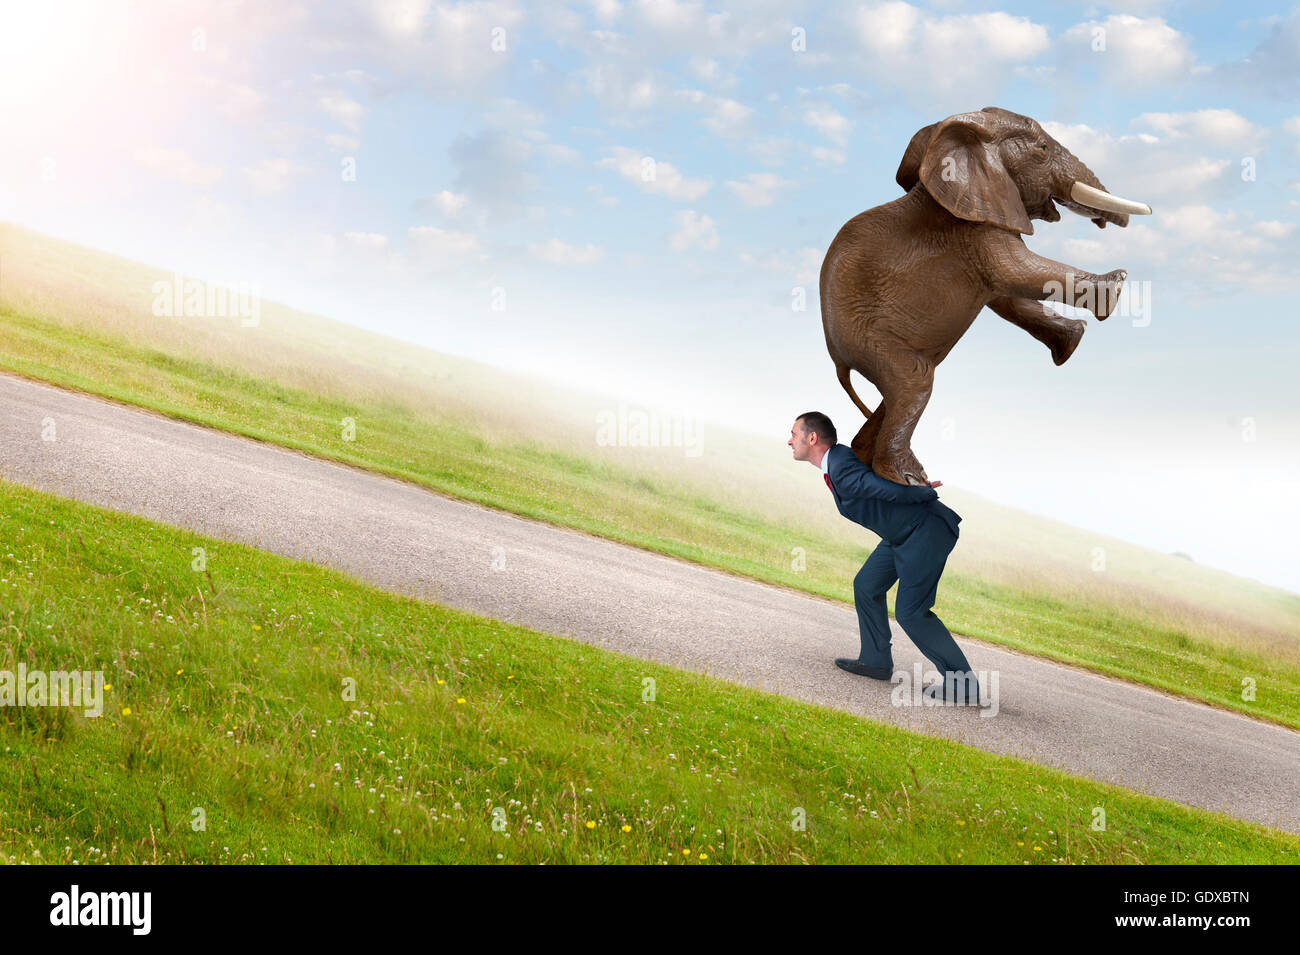 business adversity concept with businessman carrying elephant uphill - Stock Image